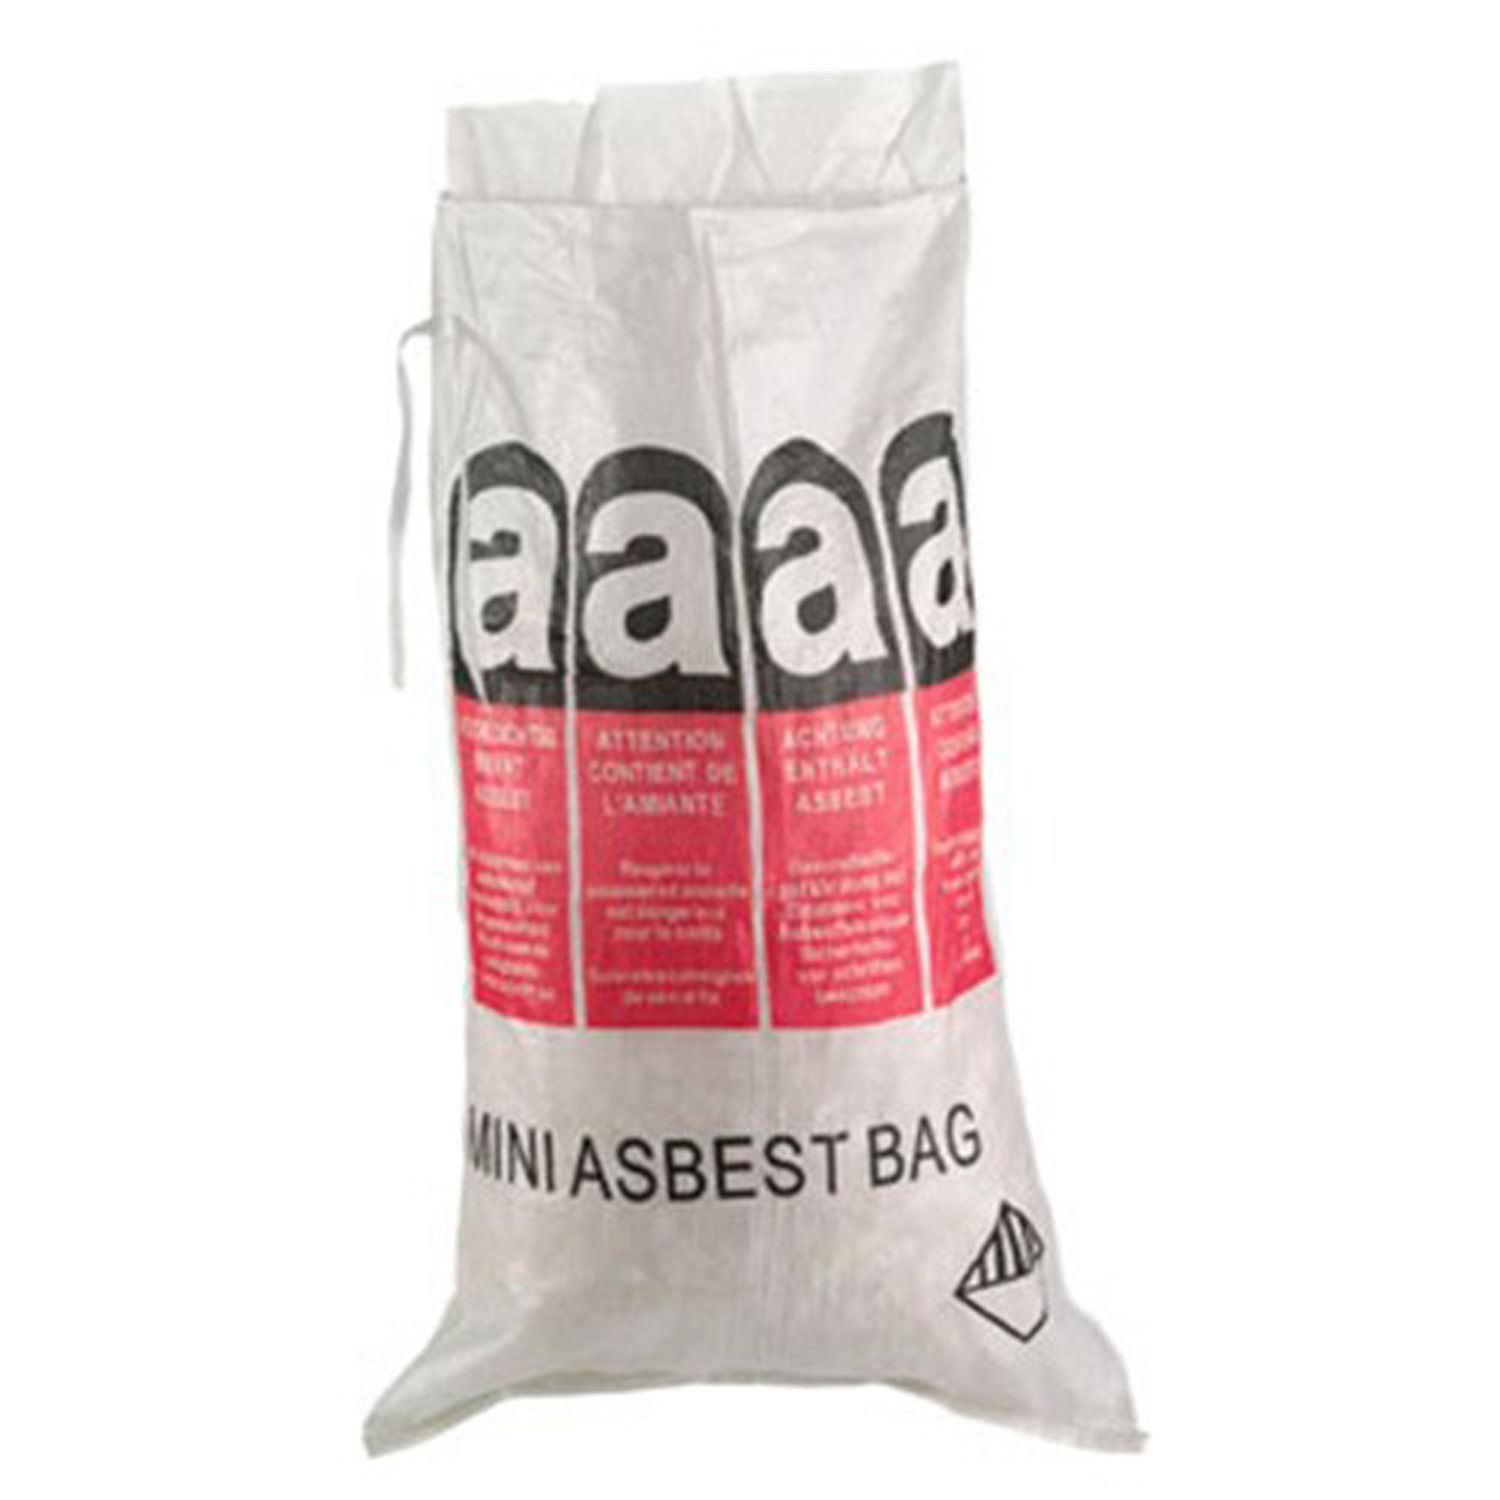 platten big bag asbest bag entsorgungs bag sack plattenbag mini asbestbag ebay. Black Bedroom Furniture Sets. Home Design Ideas